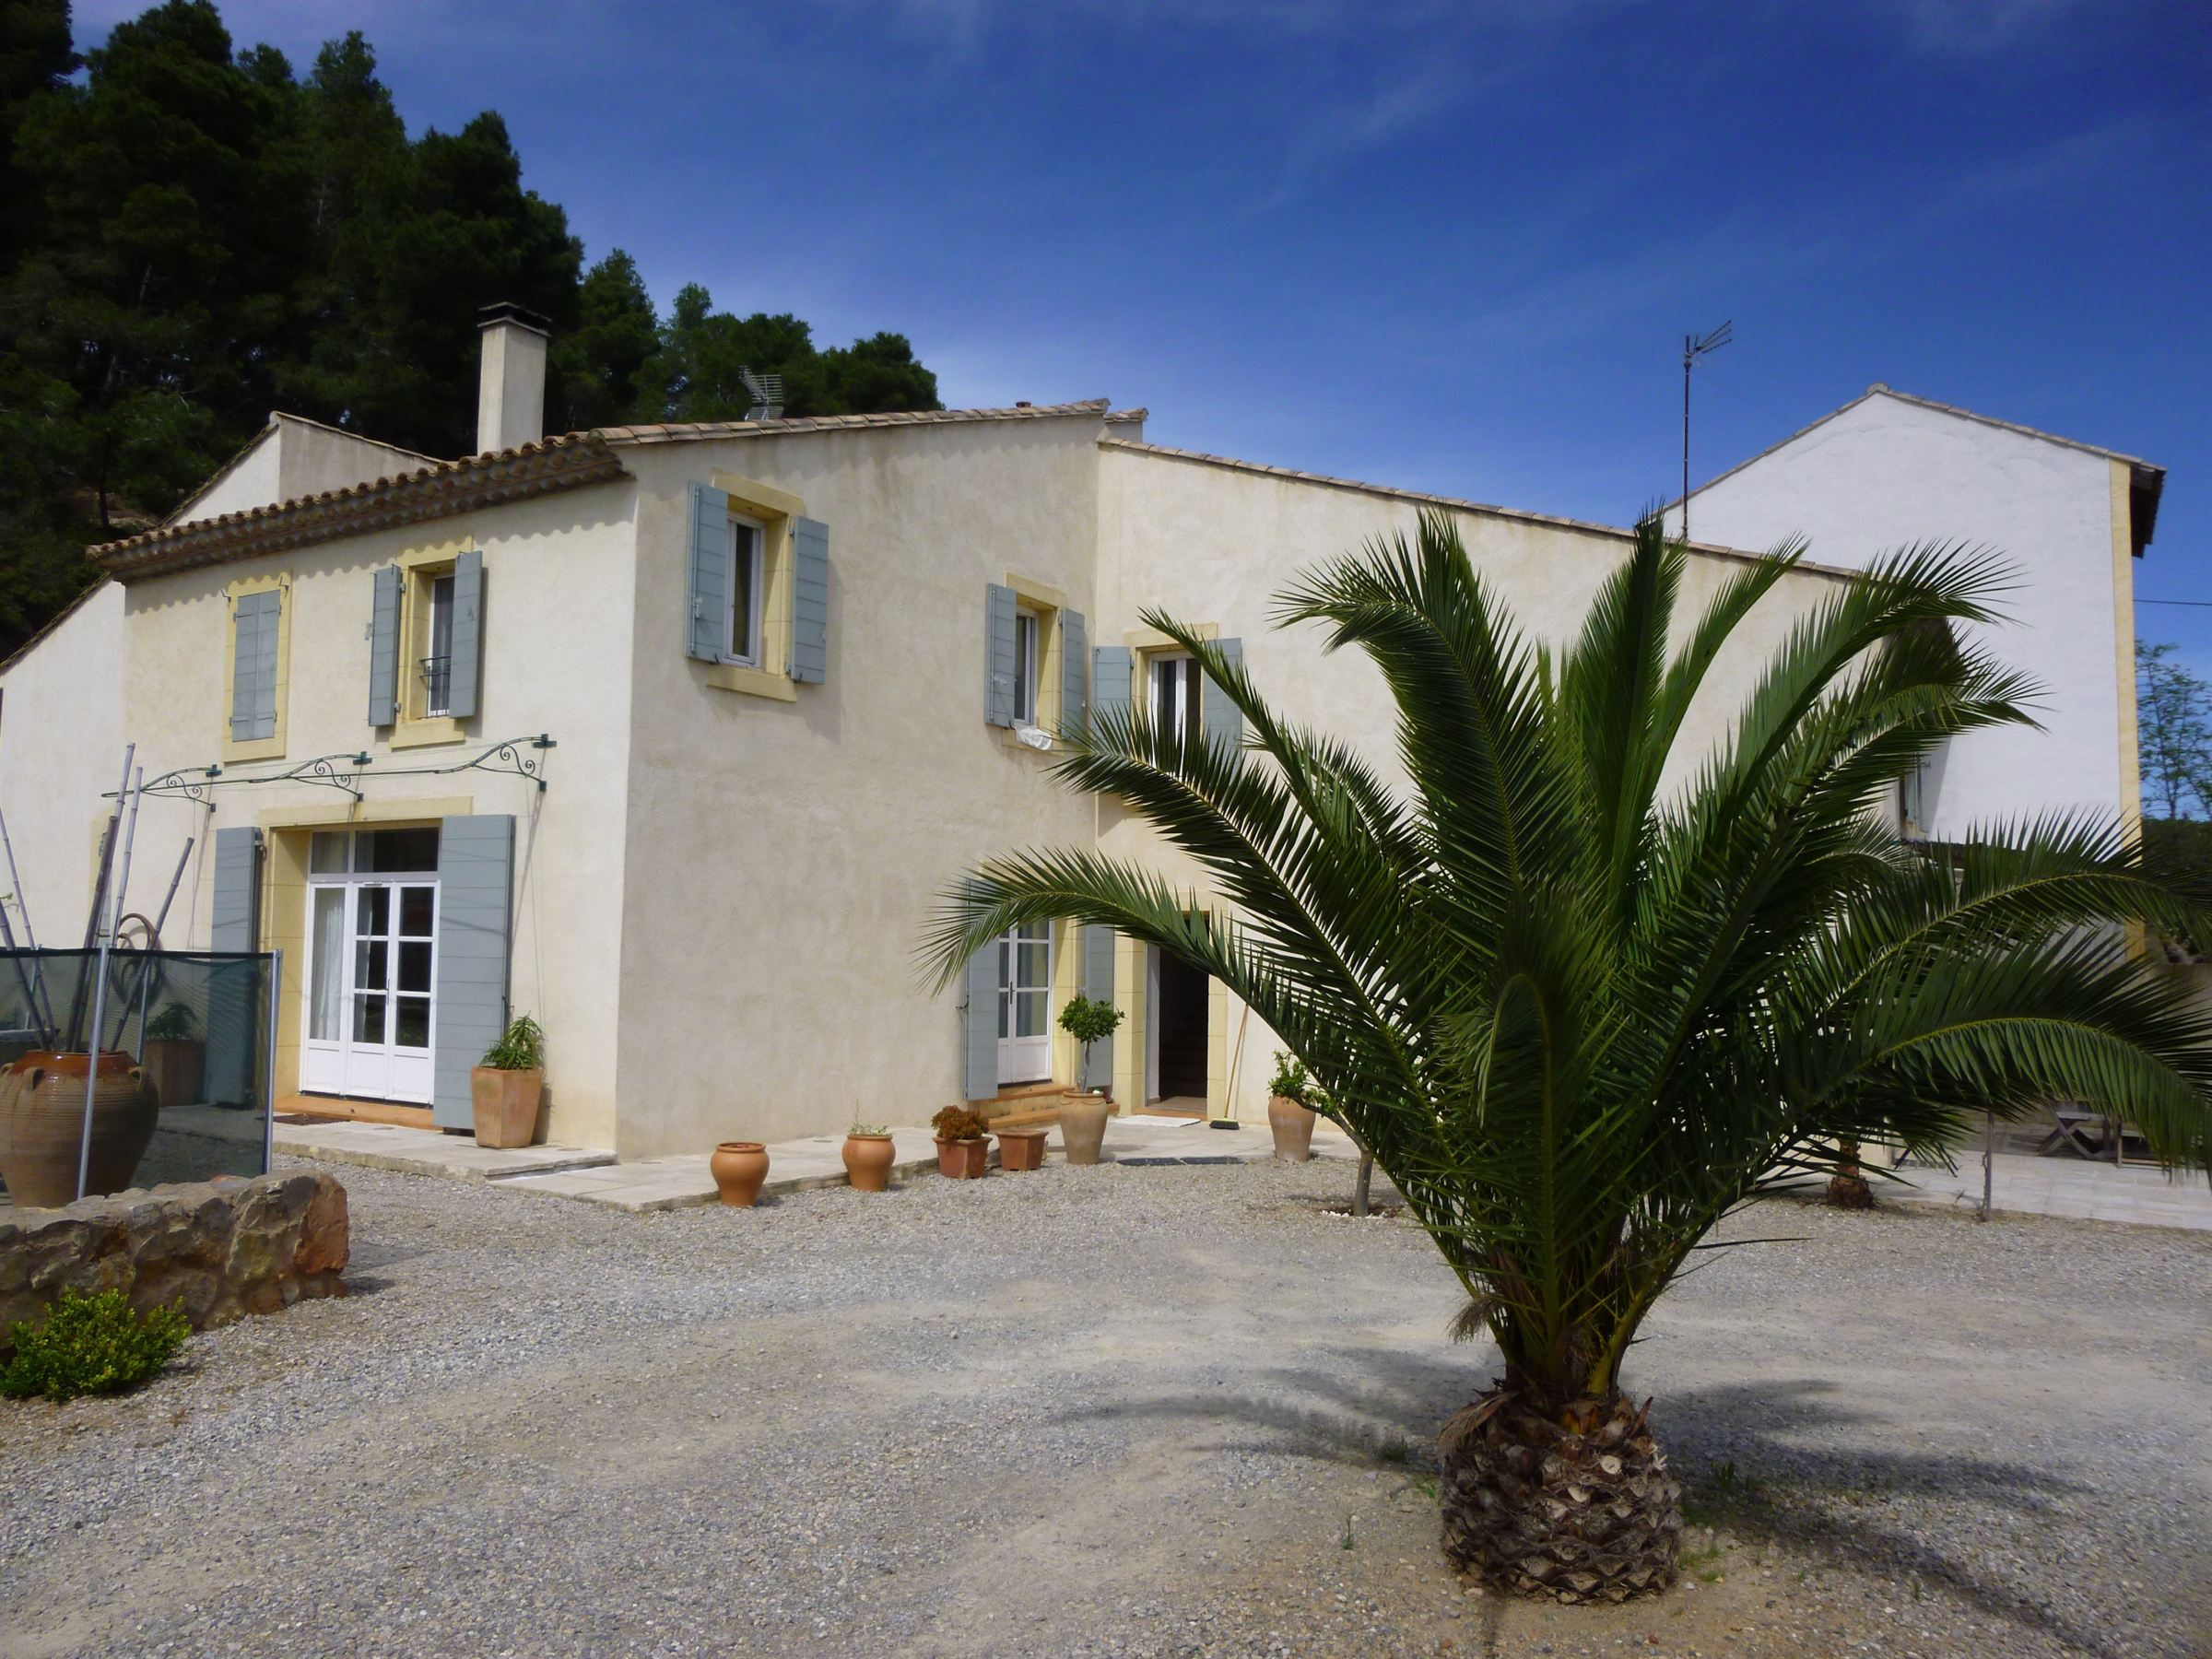 Single Family Home for Sale at authentic sheepfold Narbonne, Languedoc-Roussillon, 11100 France